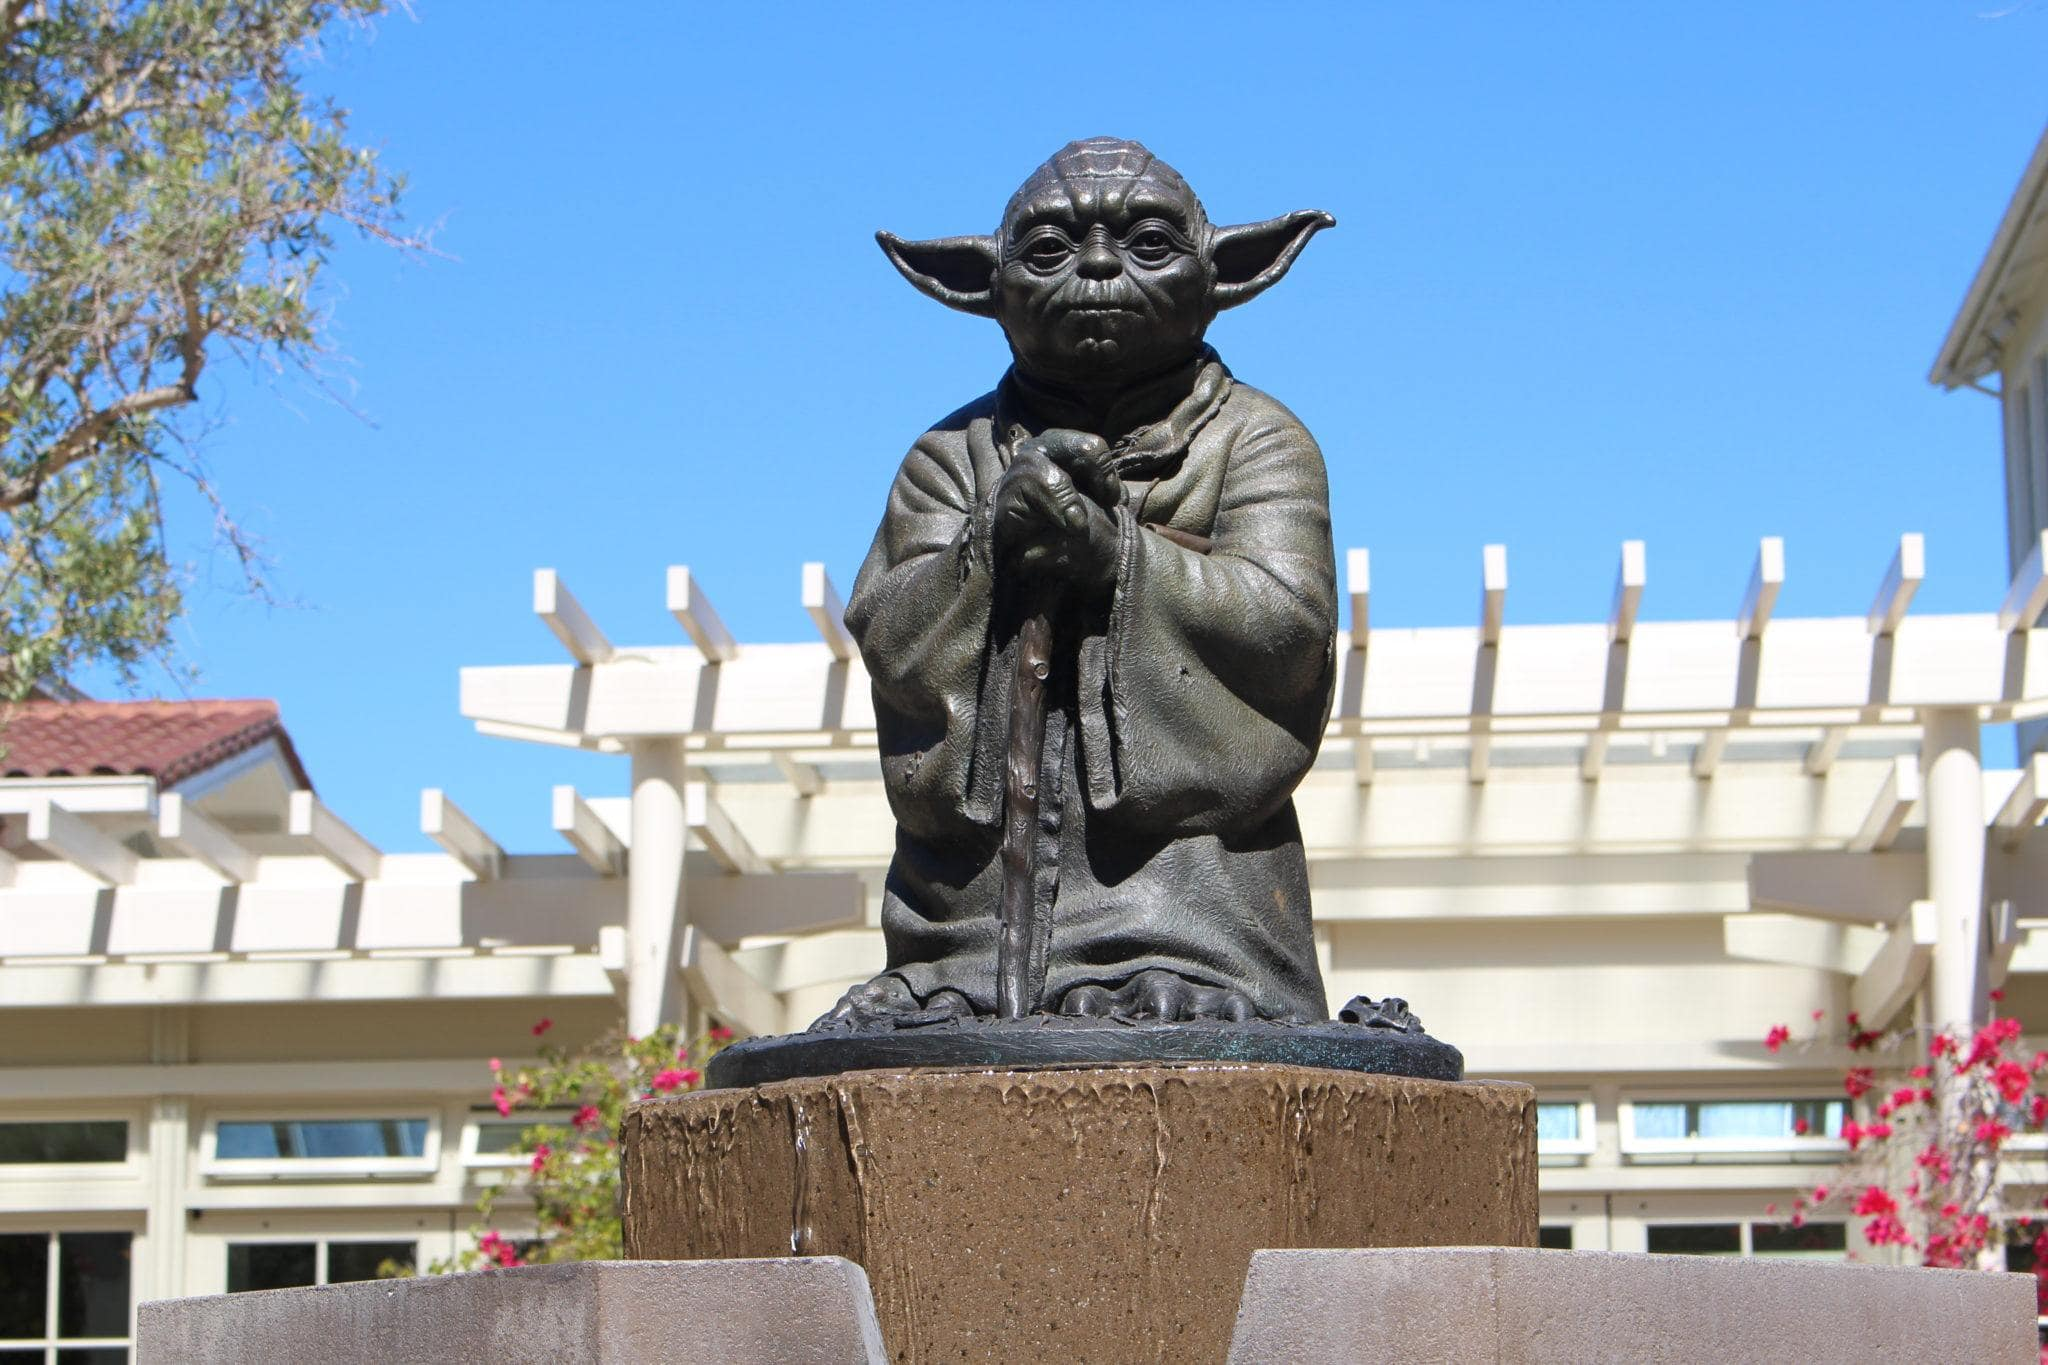 Yoda Fountain at Letterman Digital Arts Center ~ San Francisco for Star Wars Fans